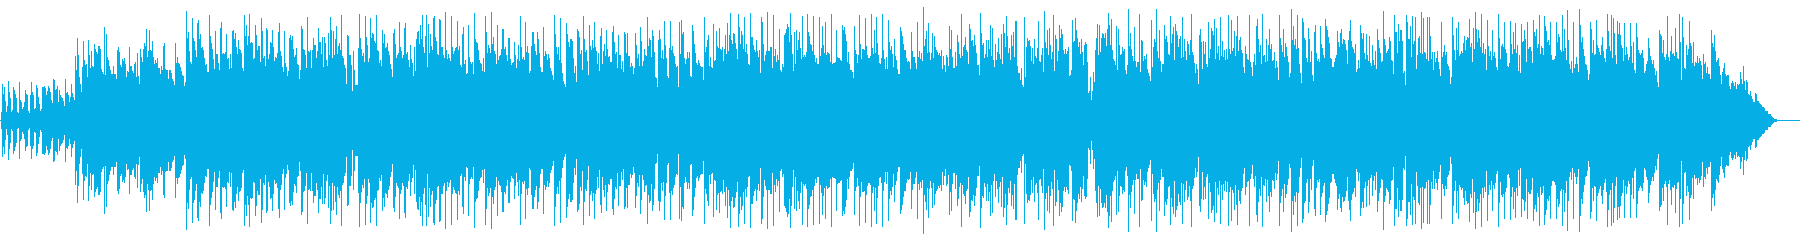 Slow country-style guitar songs's reproduced waveform